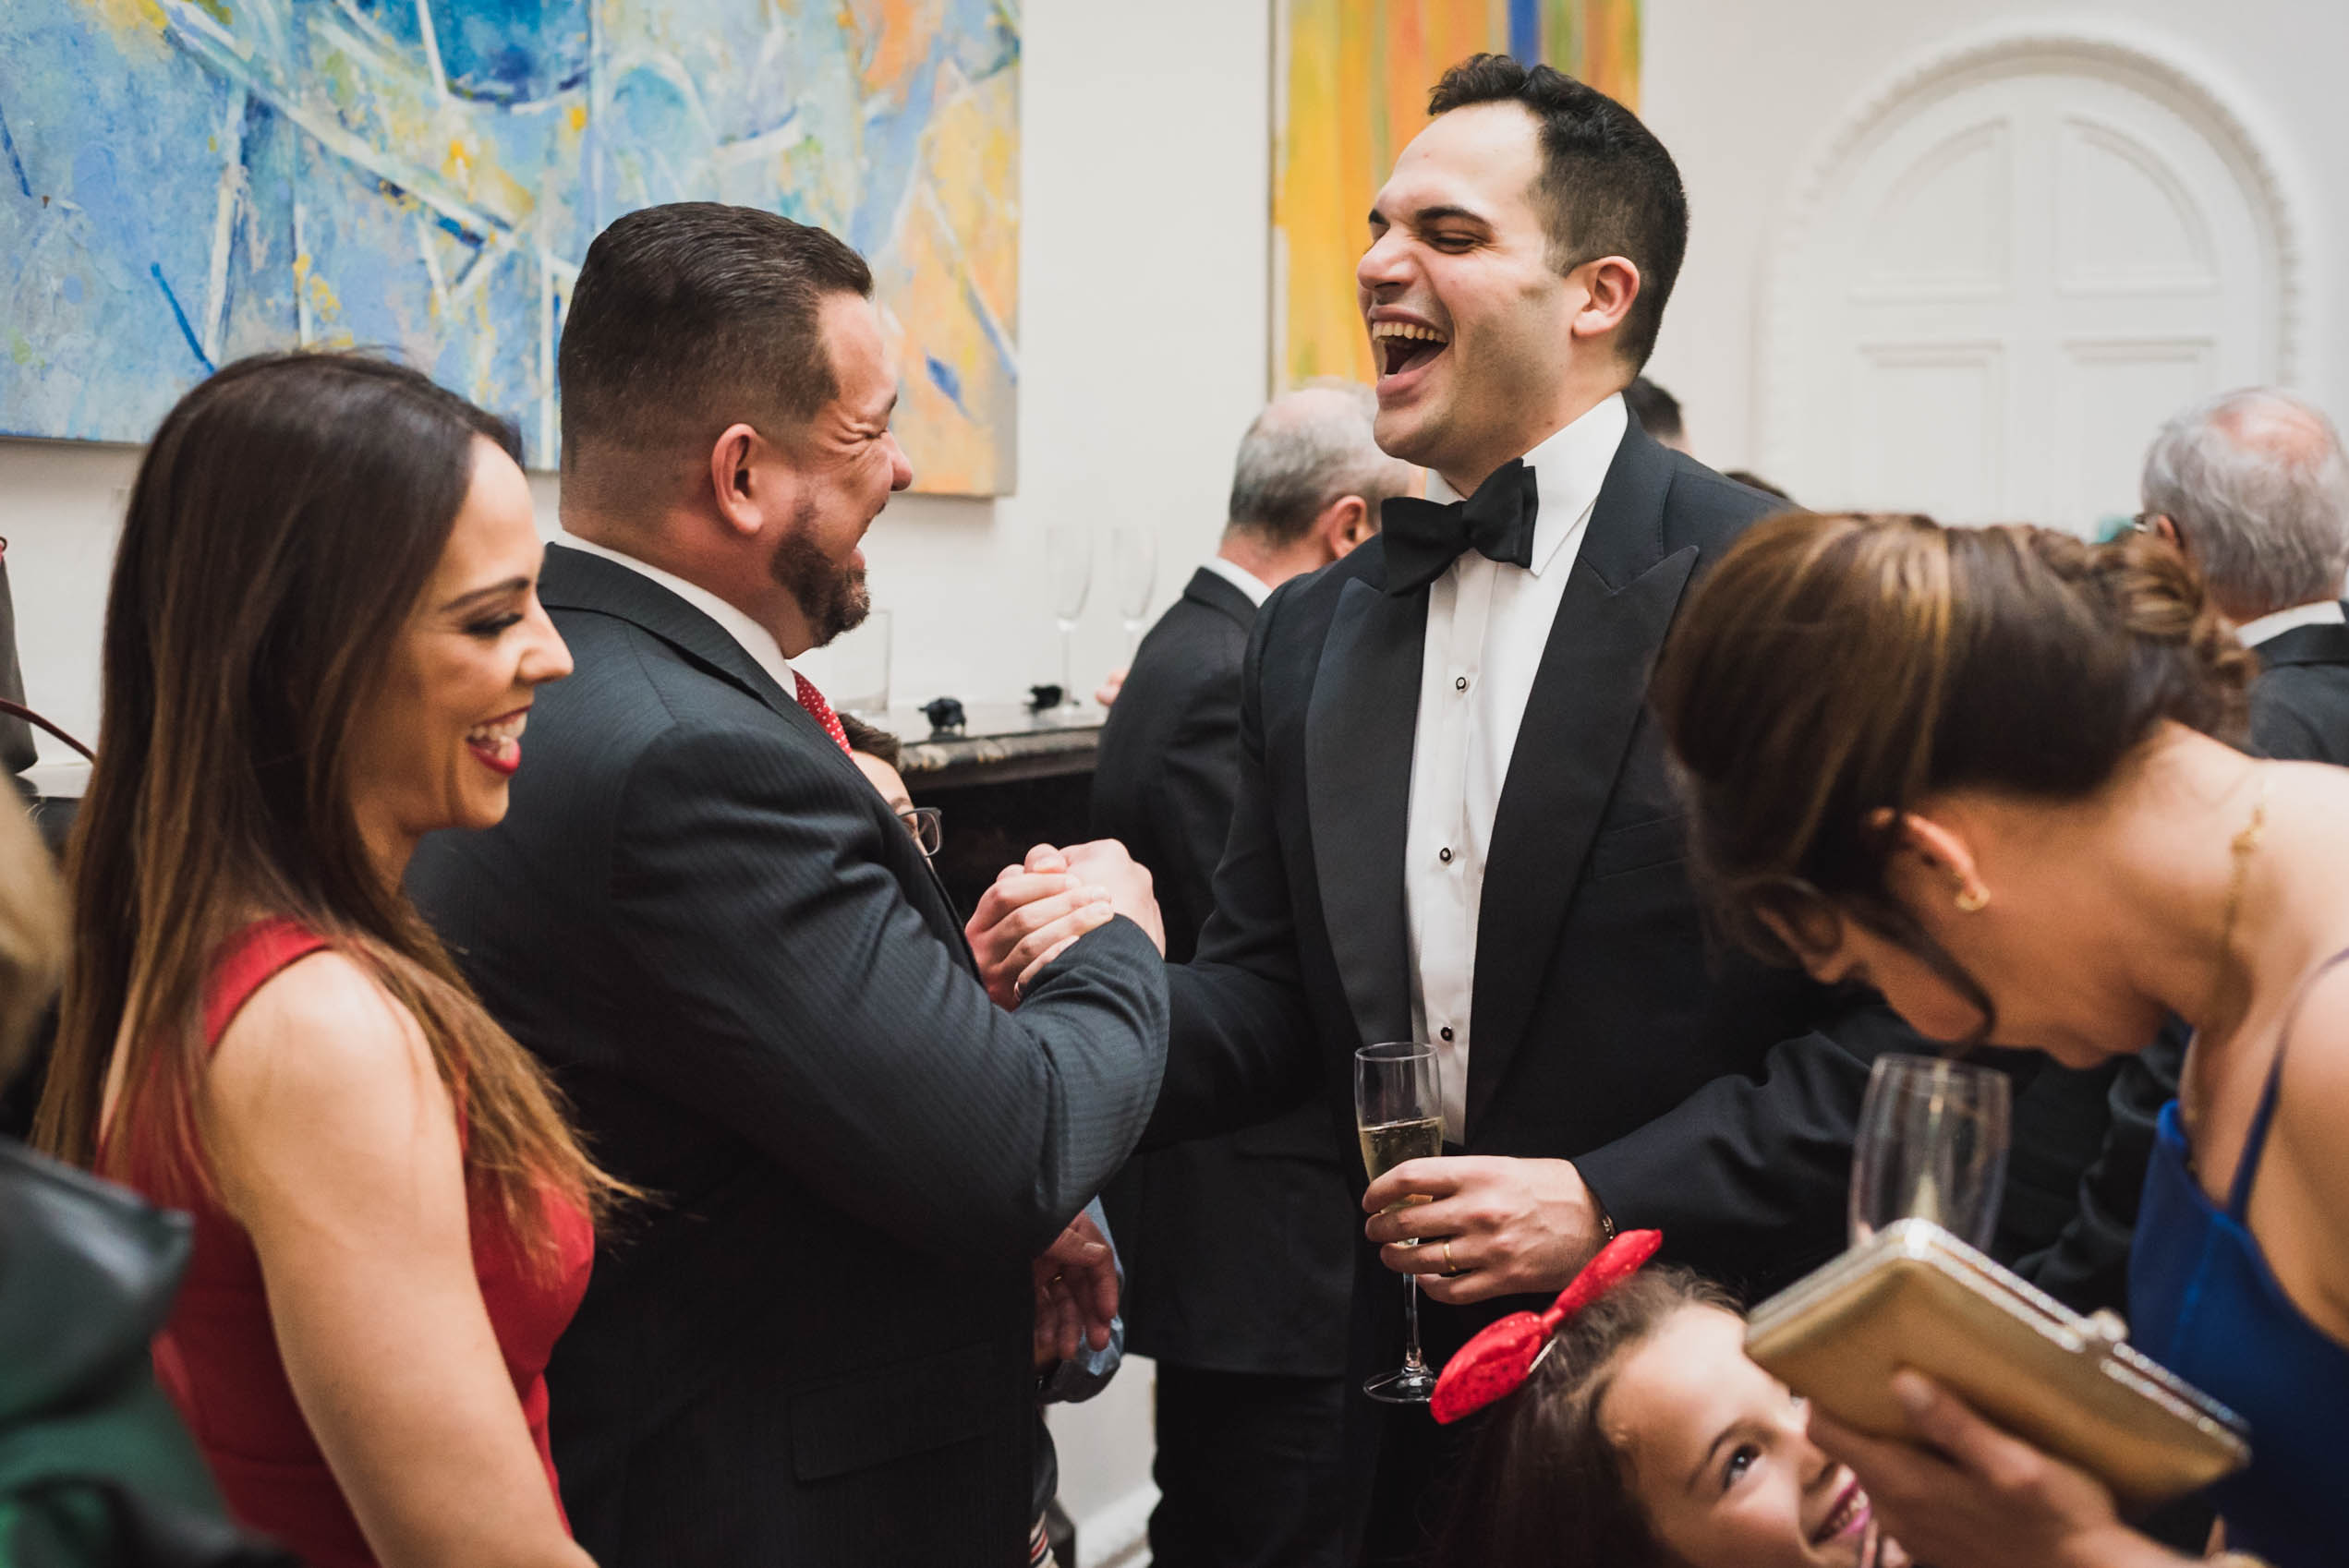 carine bea photography, groom laughing couple portraits wedding Carlton House Terrace London